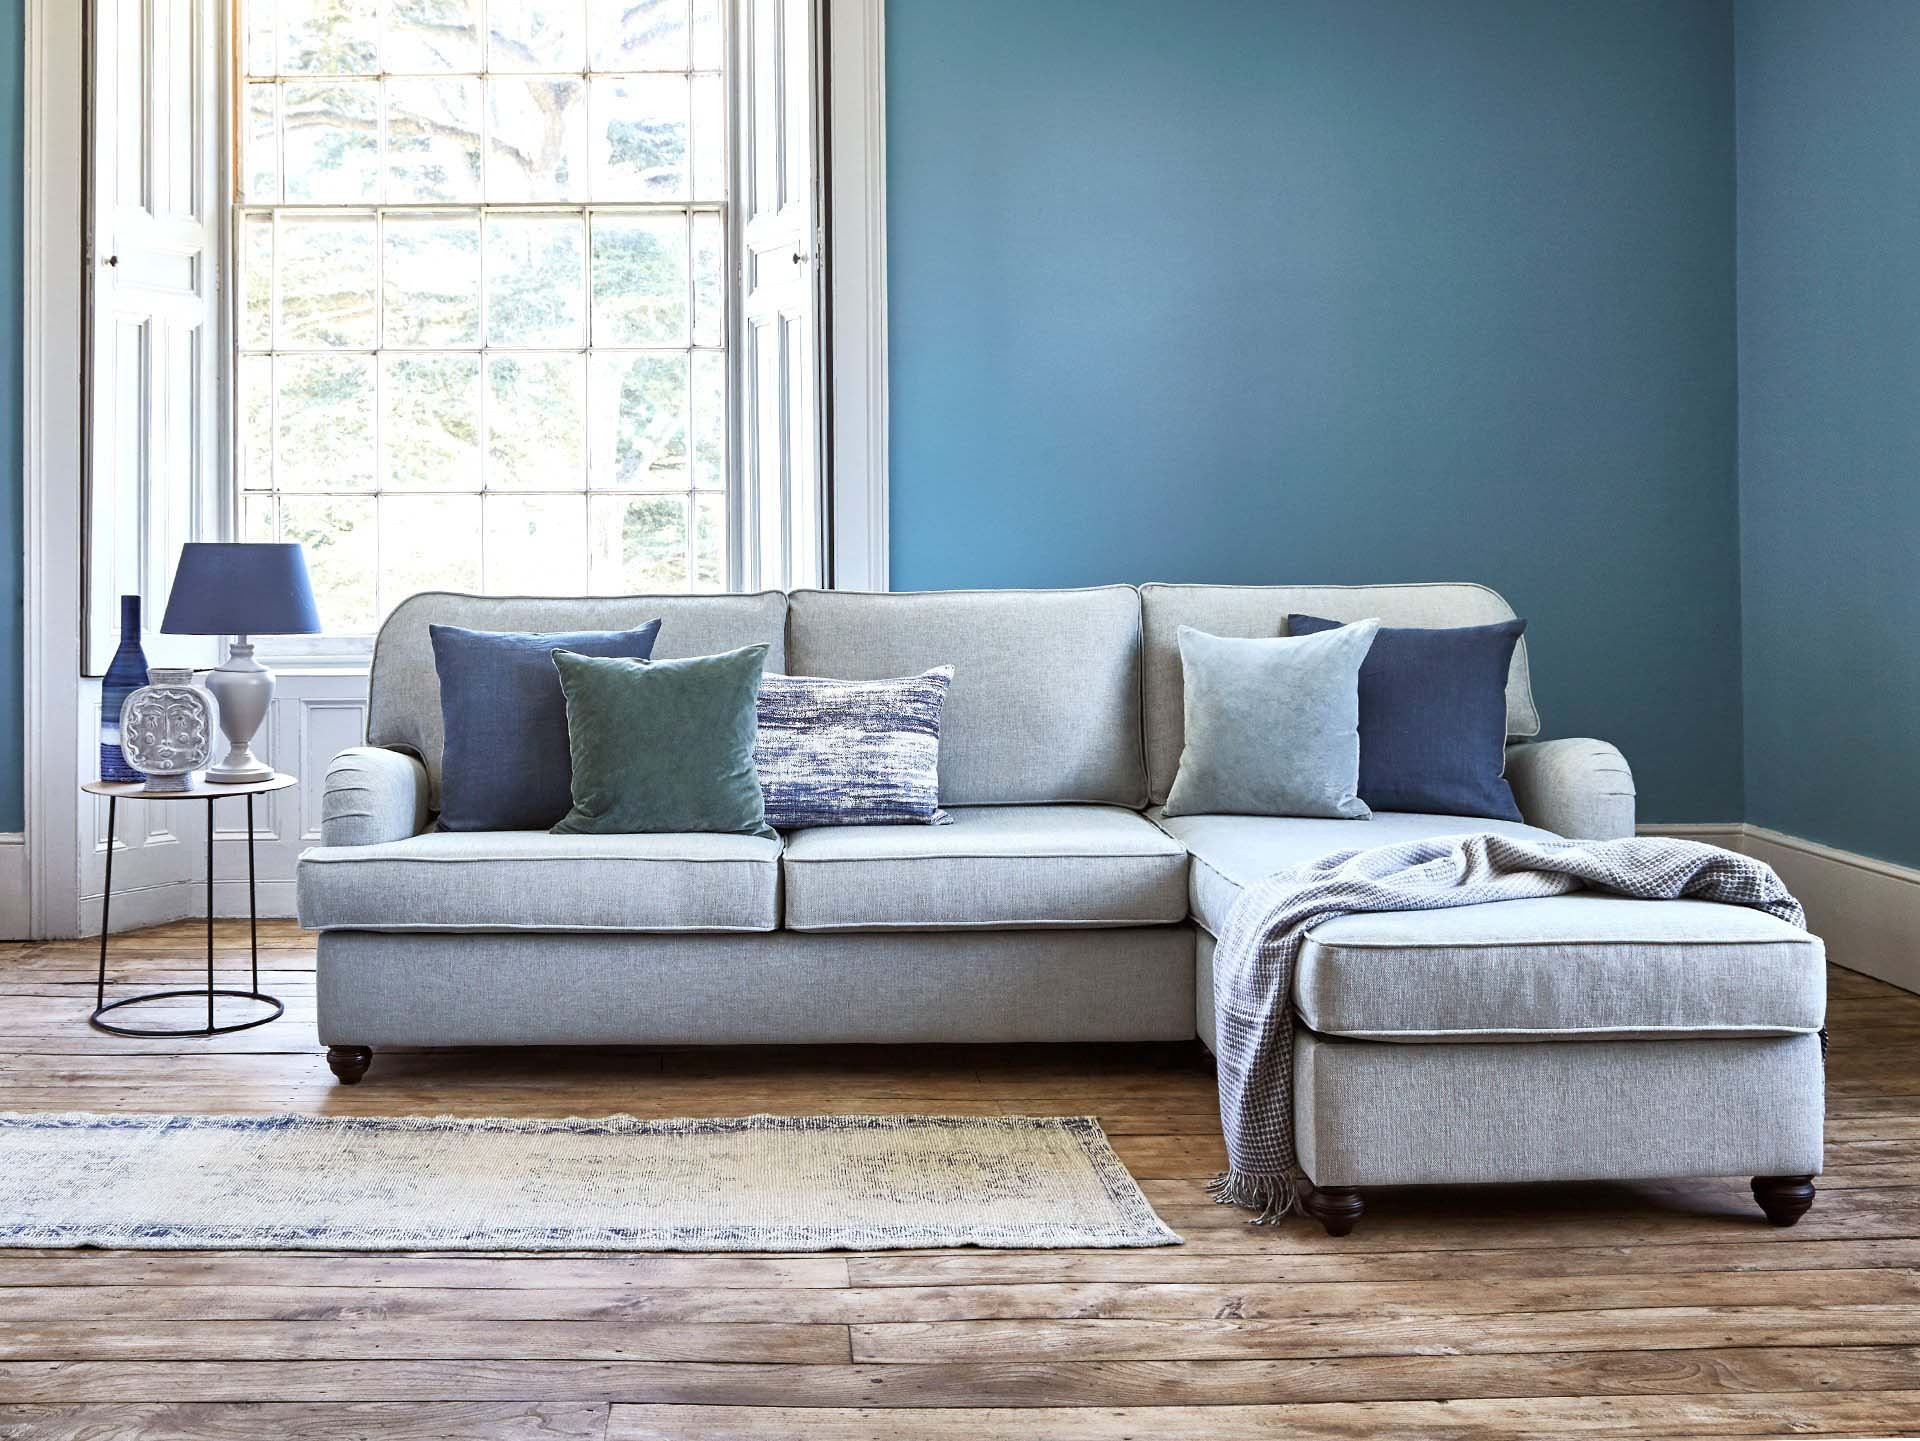 This is how I look in Stain Resistant Linen Cotton Nordic Blue as a right side chaise with reflex foam seat cushions